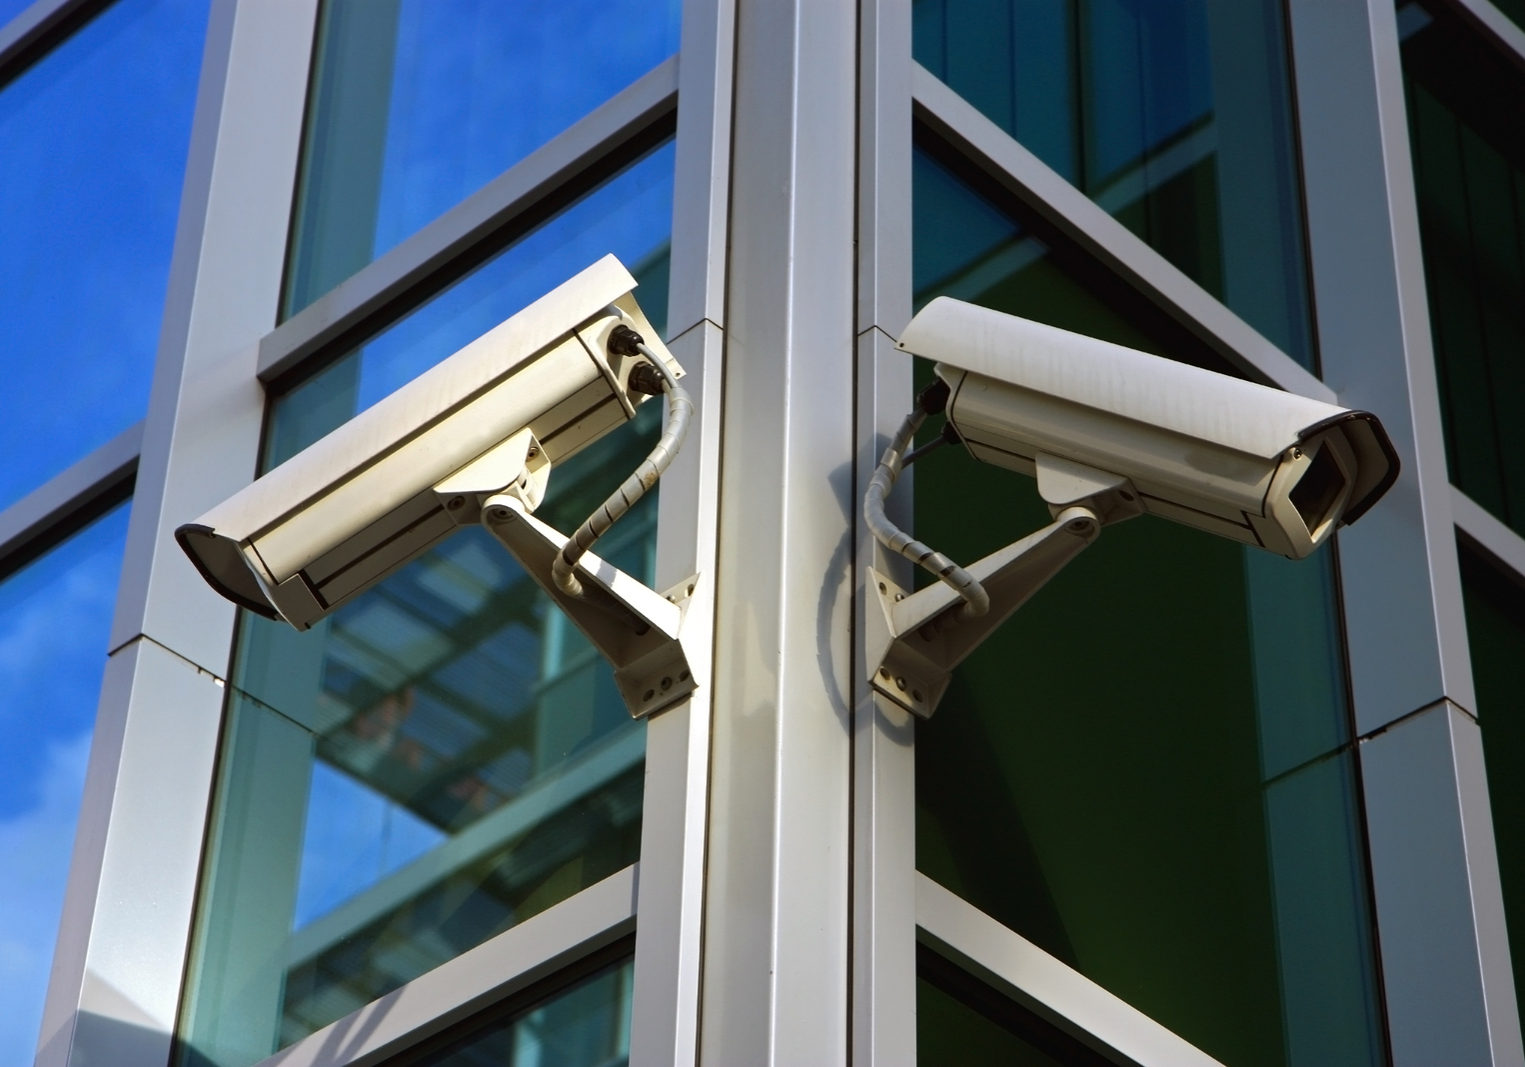 two city security cameras on the glass facade